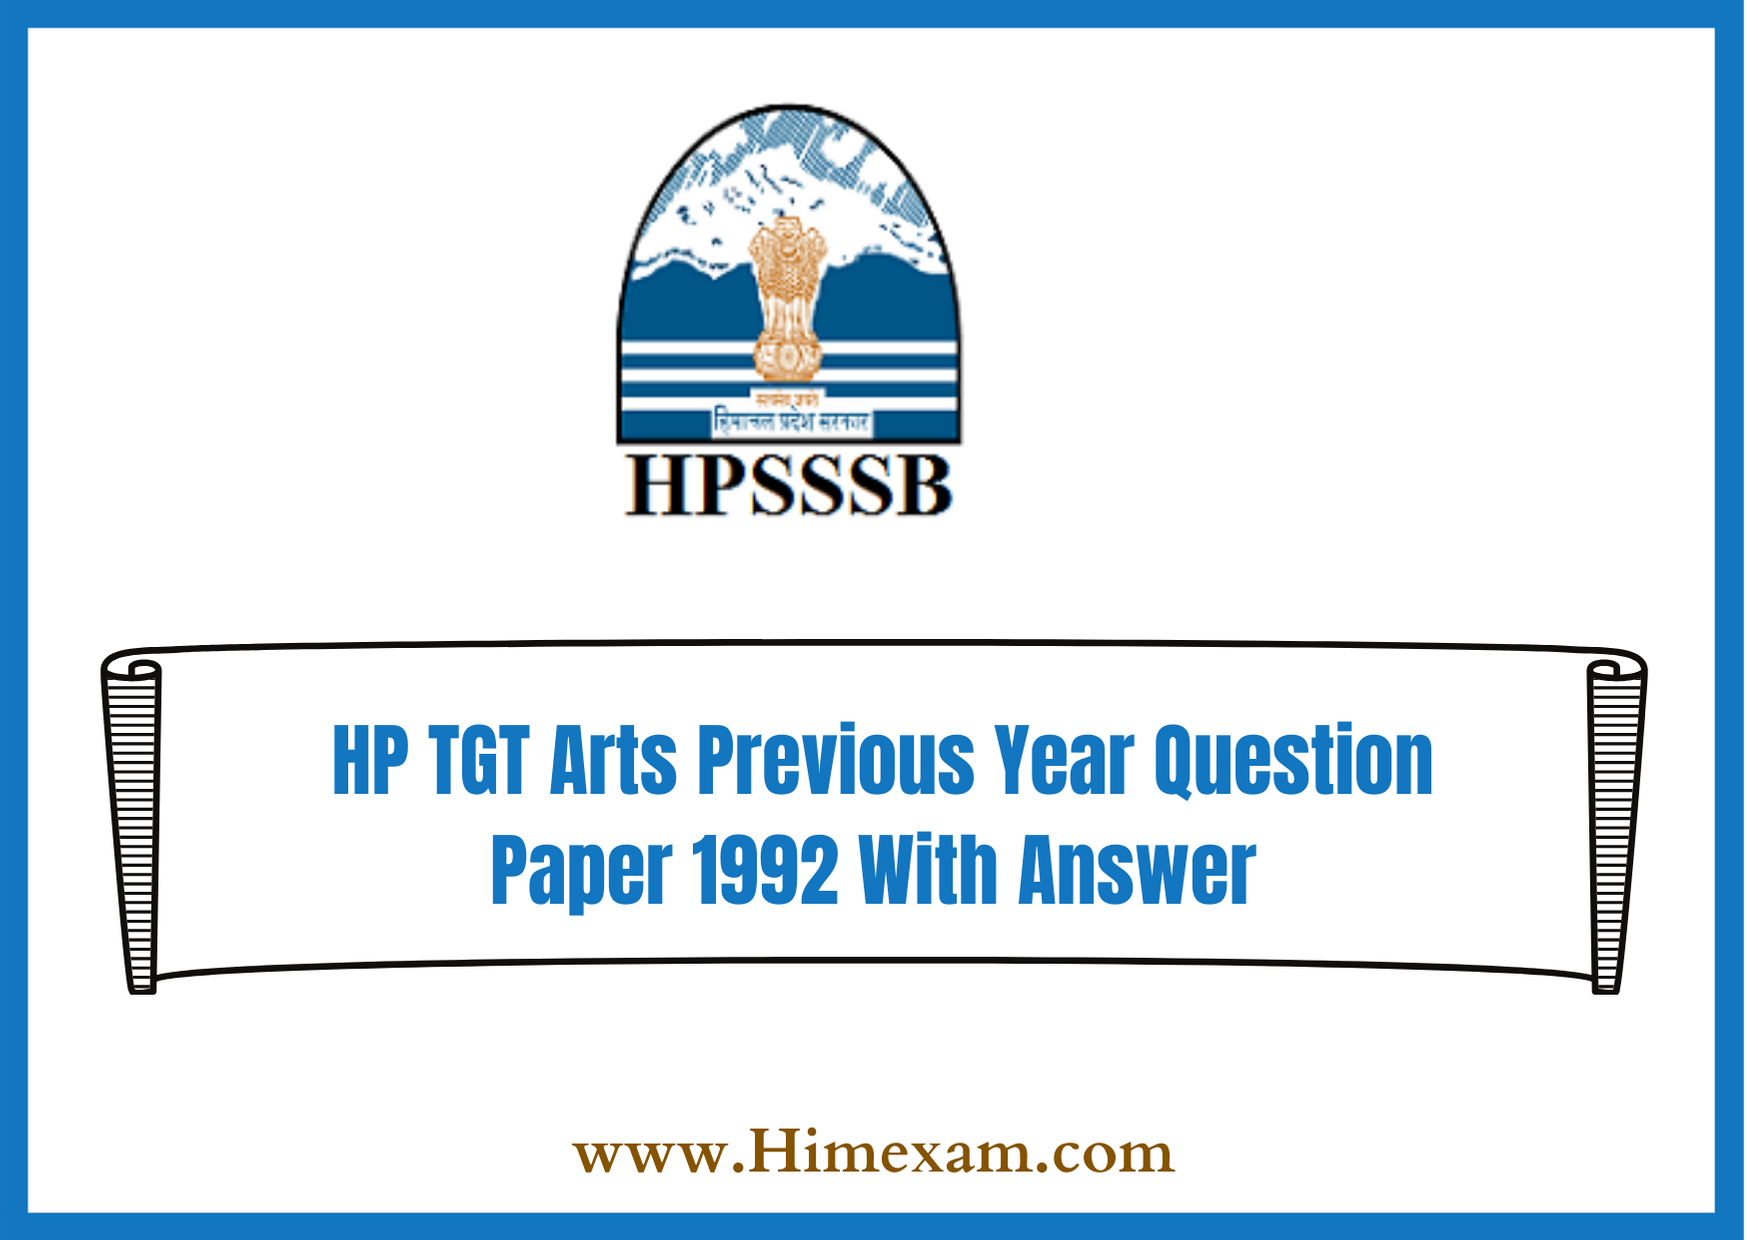 HP TGT Arts Previous Year Question Paper 1992 With Answer